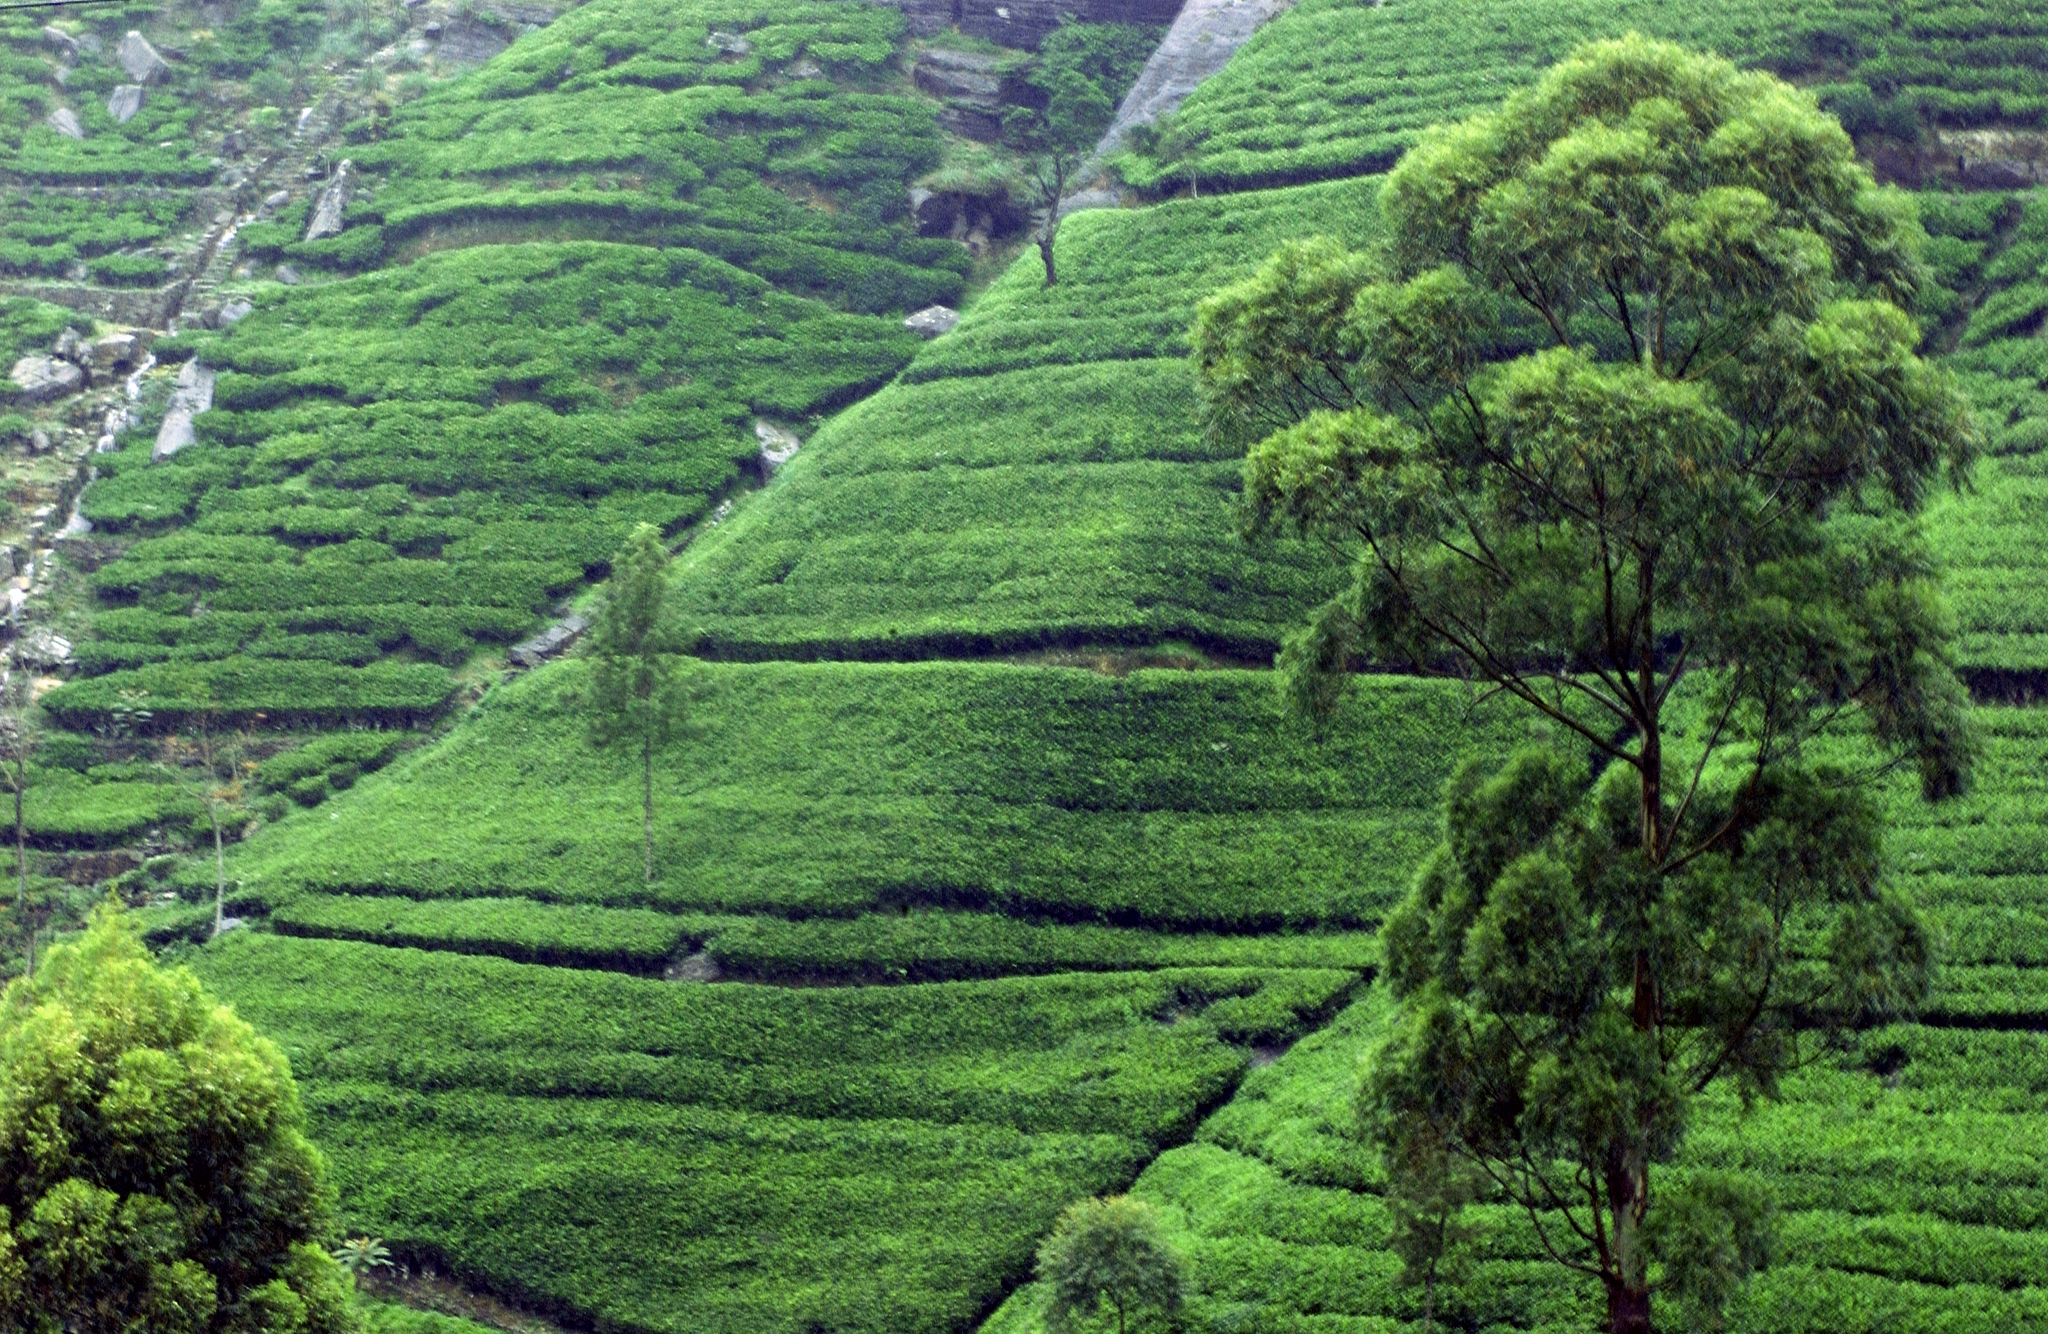 Tea_plantation_near_Kandy,_Sri_Lanka.jpg